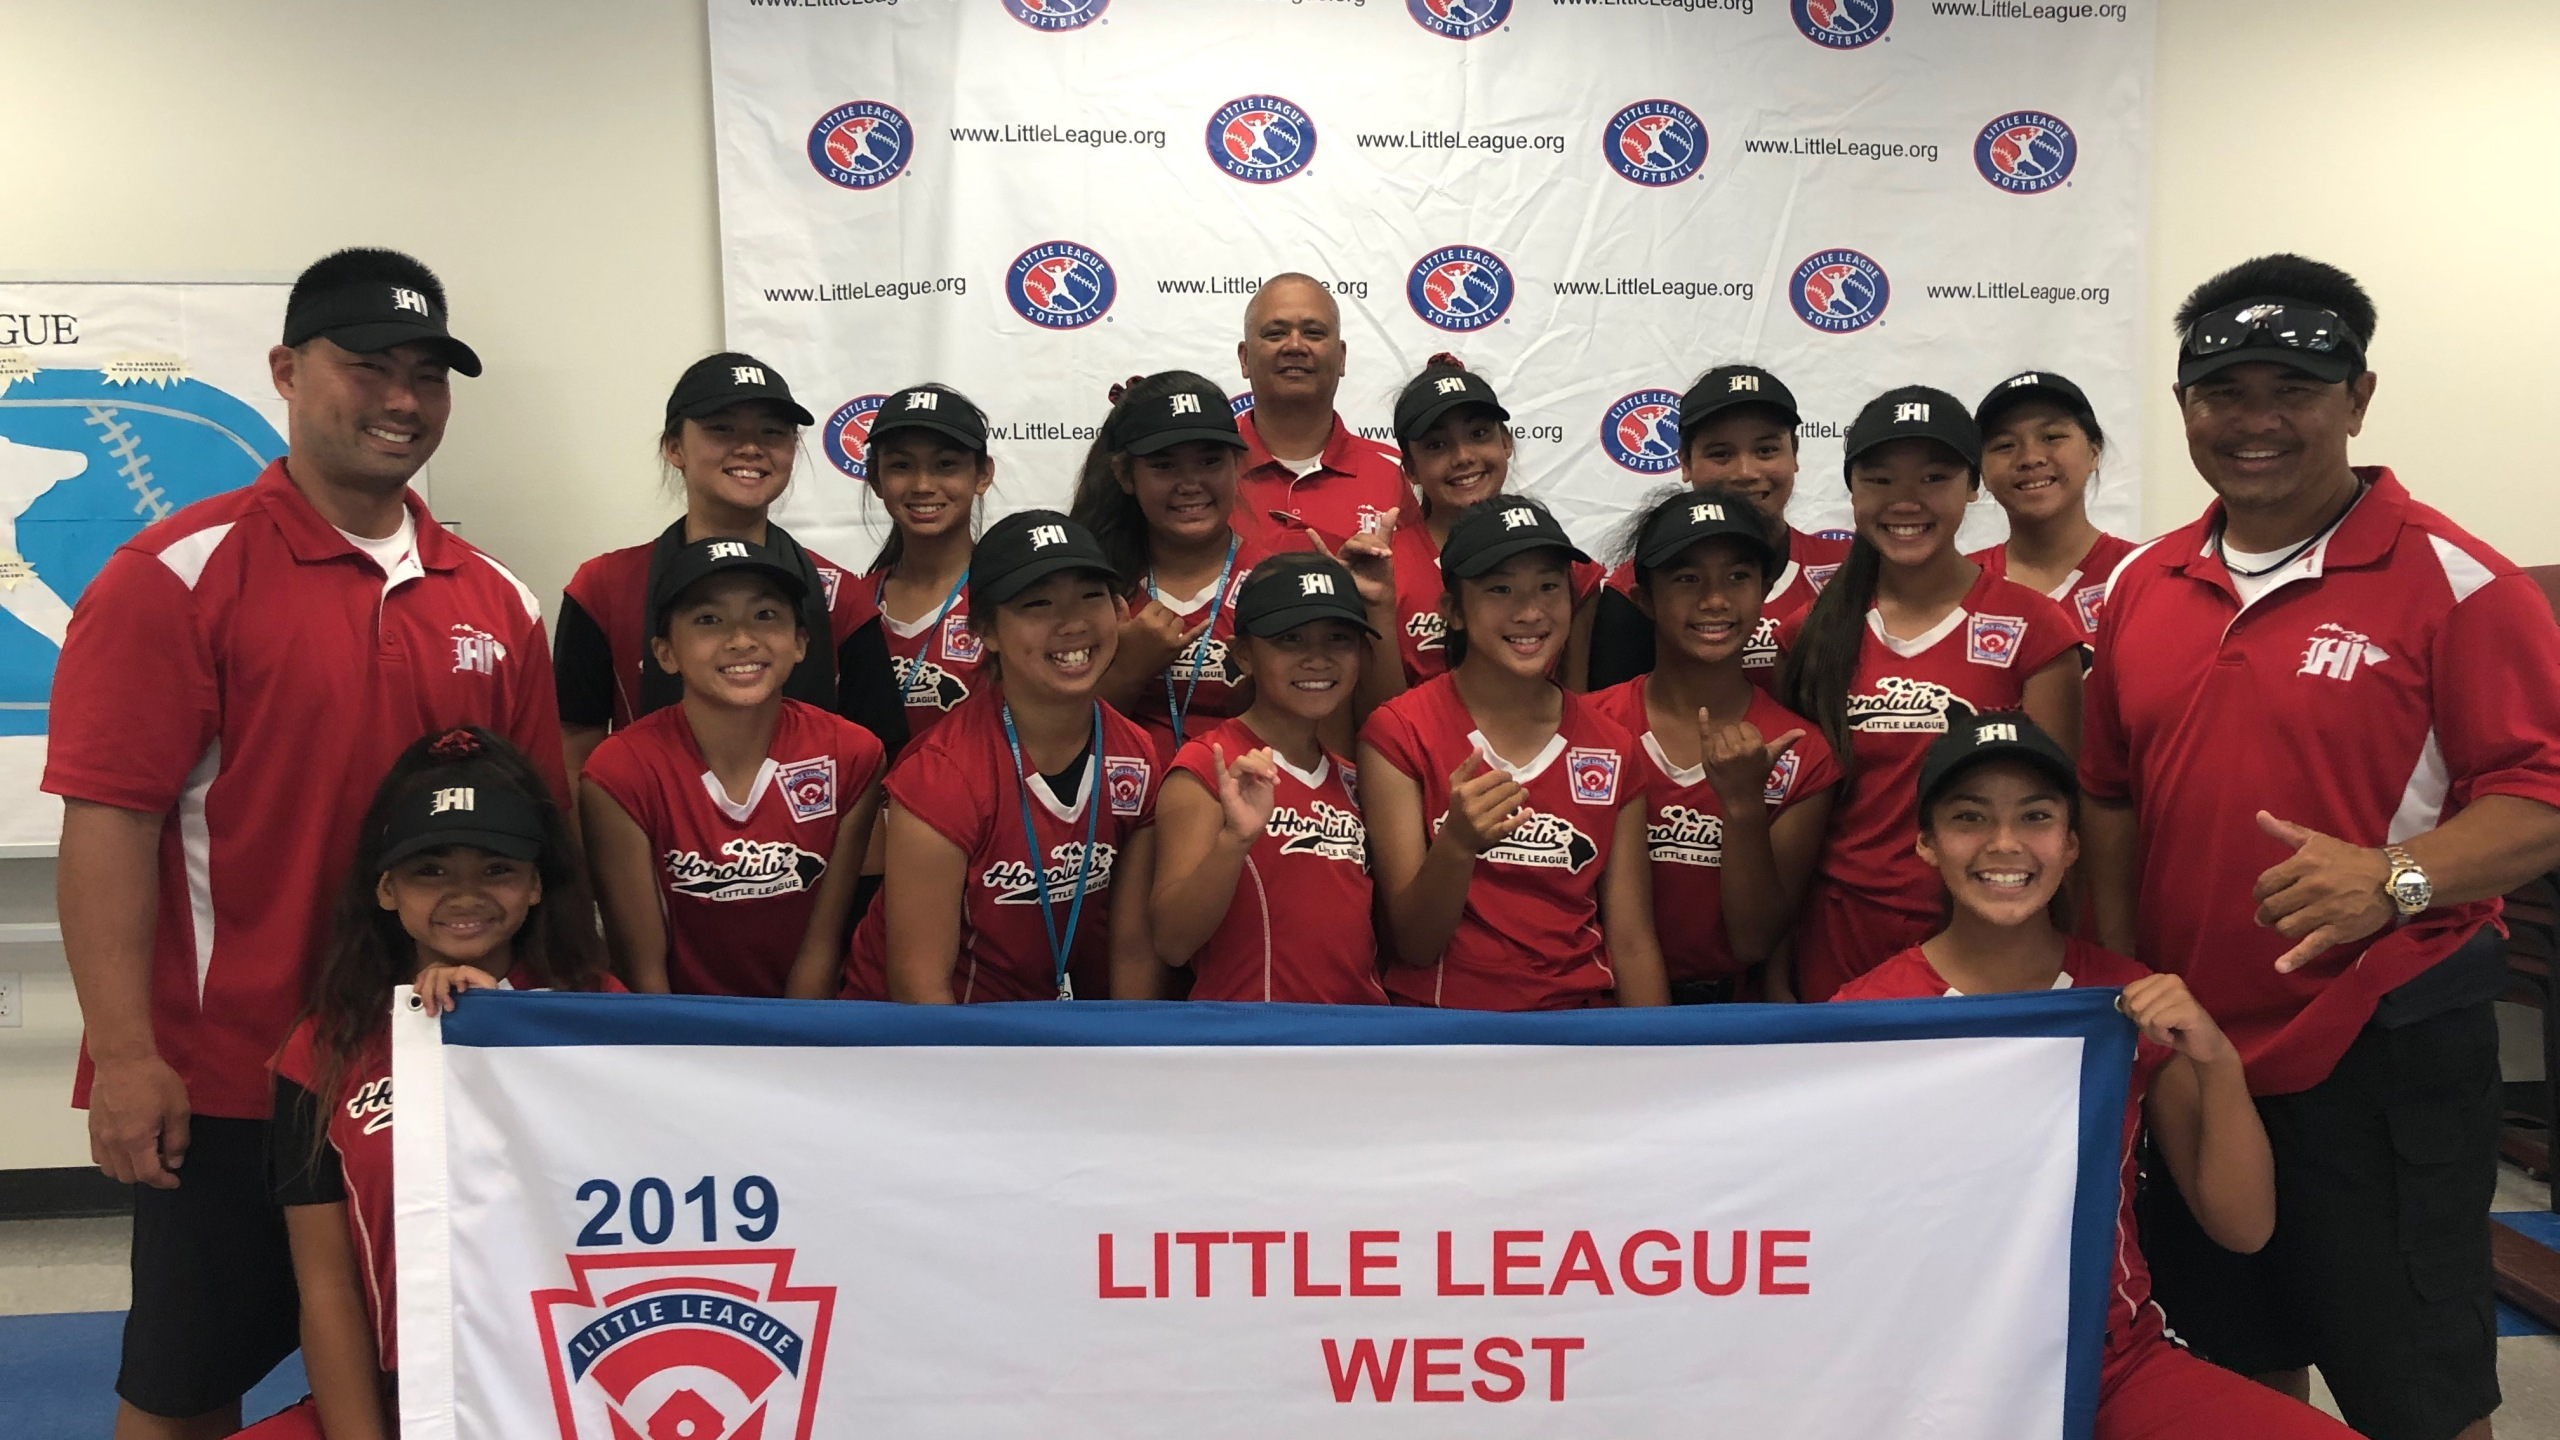 Youth softball, baseball teams advance to national World